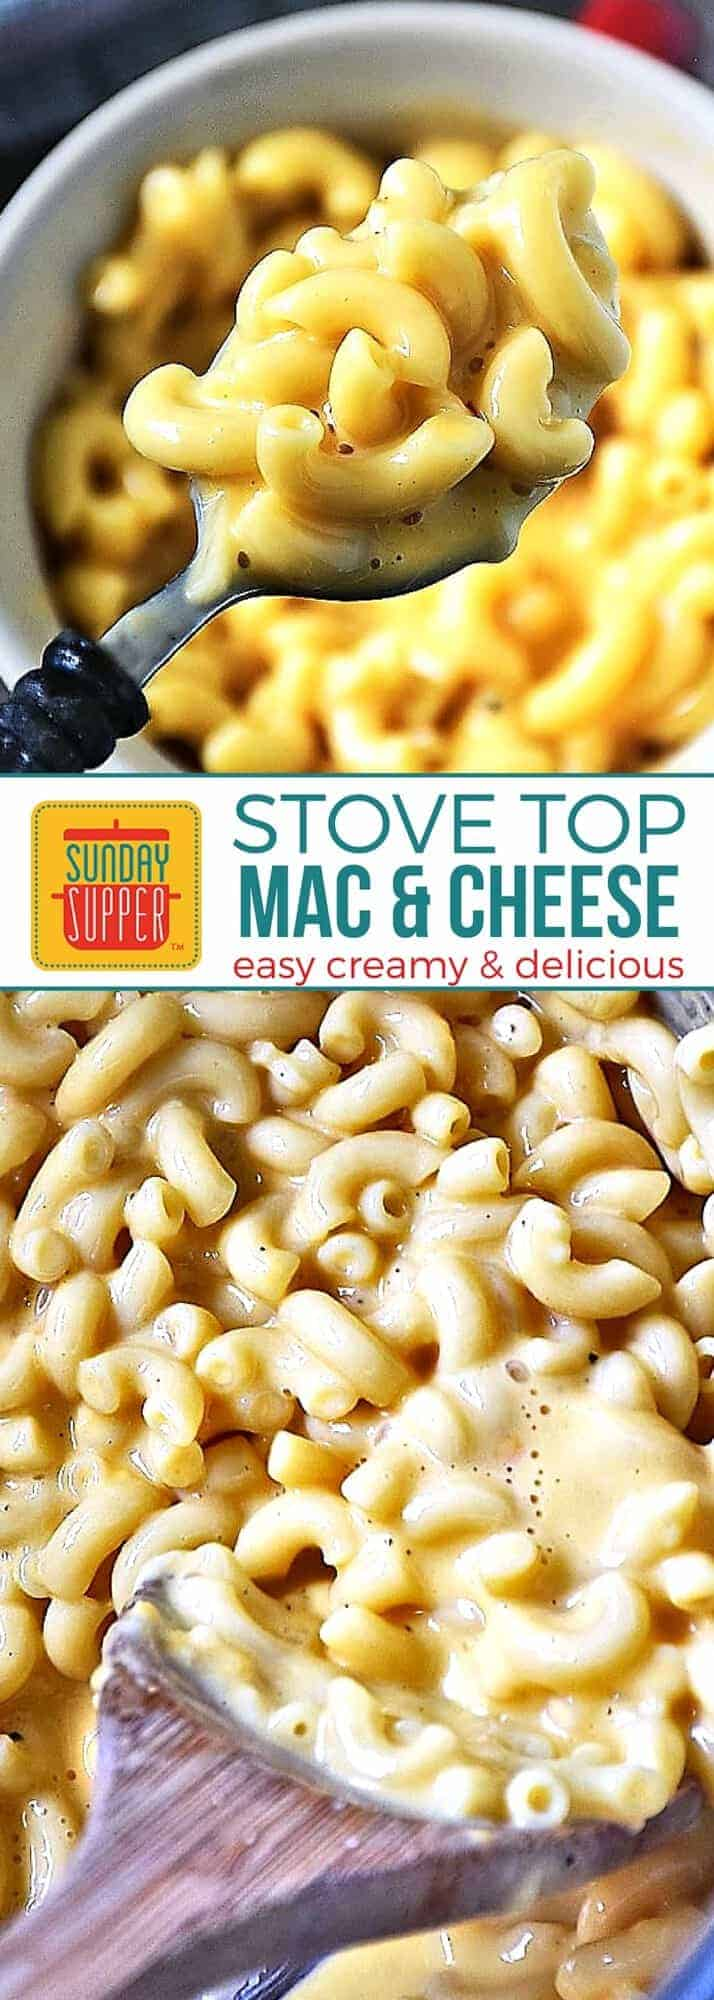 This is the mac and cheese recipe the whole FAMILY will LOVE! Our Easy Creamy Mac and Cheese recipe is adapted from Alton Brown's Mac and Cheese recipe. It's a stove top mac and cheese recipe, so it's SUPER EASY to make and very creamy delicious! Add this to your family Sunday Supper Recipes! #SundaySupper #MacnCheese #PastaRecipes #ComfortFoodRecipes